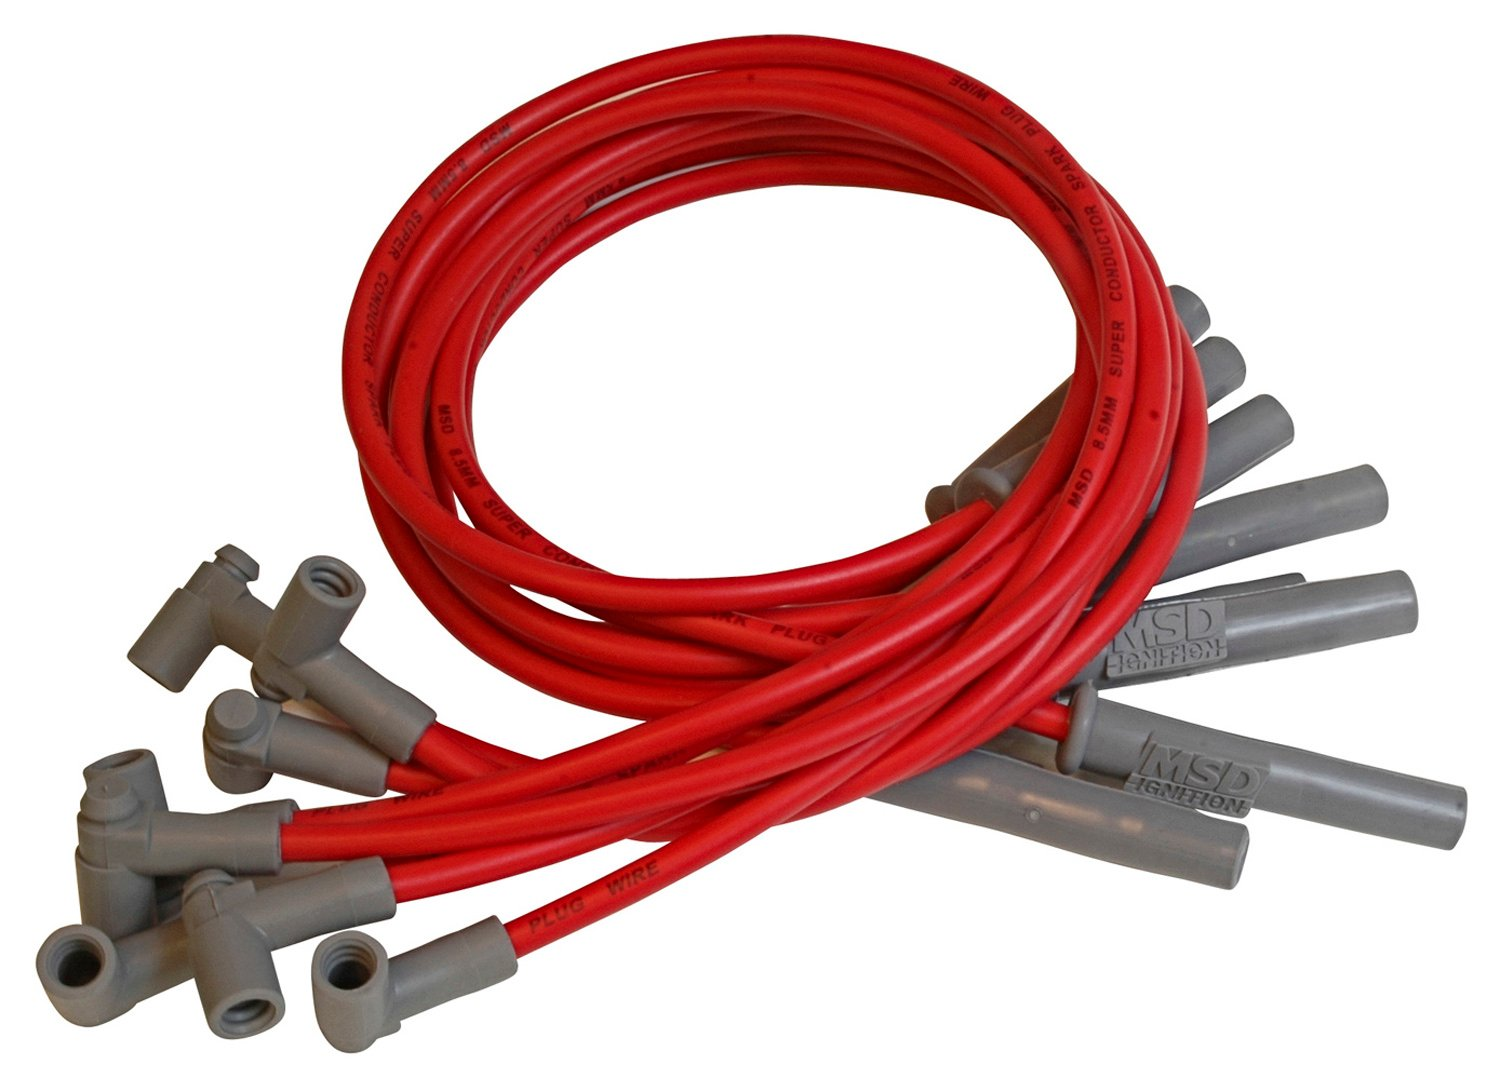 32739 - Super Conductor Spark Plug Wire Set, Chry. 383-440 HEI for MSD Dist. Image